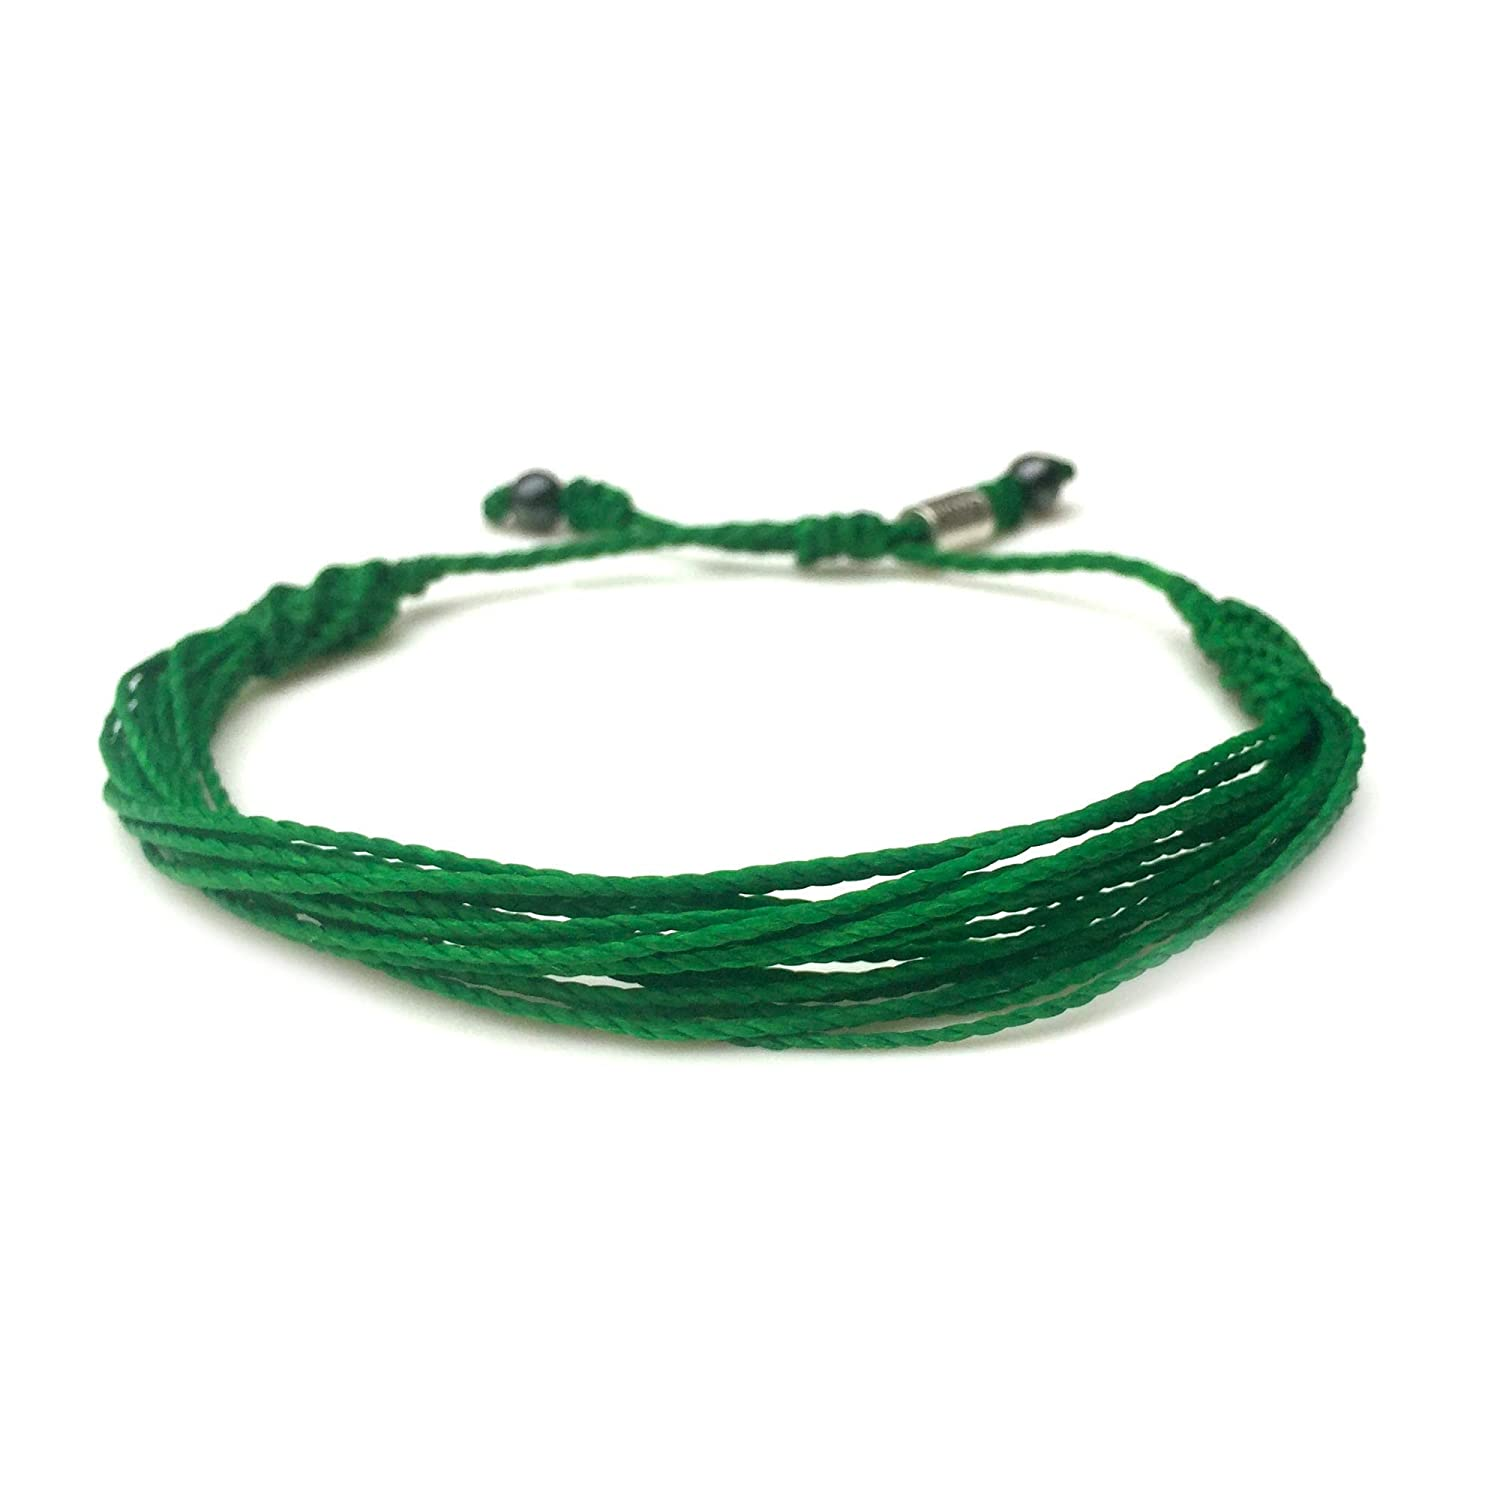 Handmade Custom Sized Adjustable Cause Jewelry for Men Women and Kids RUMI SUMAQ Green Awareness Bracelet for Liver Gallbladder Bile Duct Cancer Mental Health Depression Cerebral Palsy